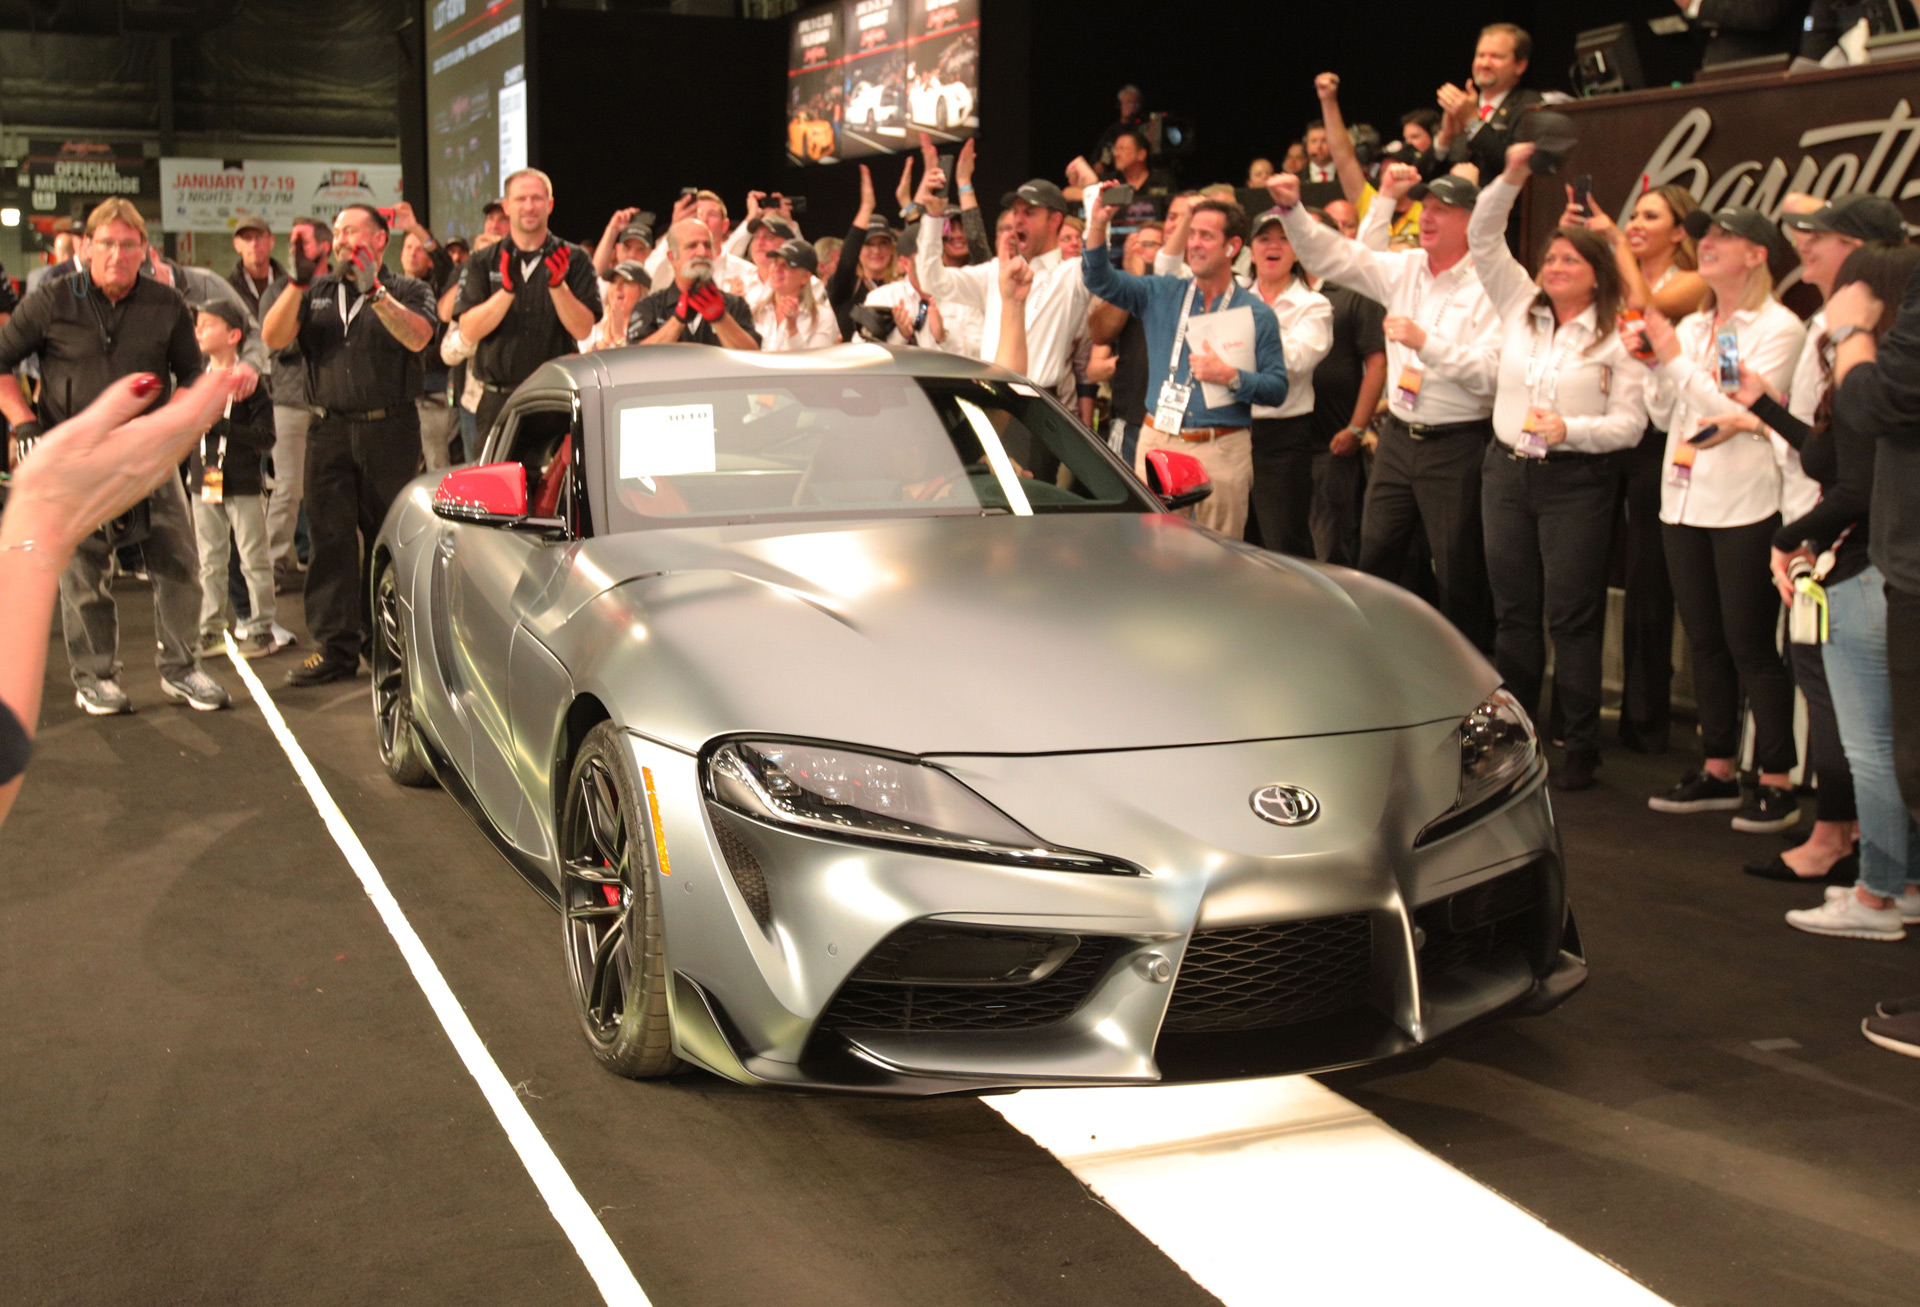 2020 Toyota Supra #001 sells for $2.1M at Barrett-Jackson auction